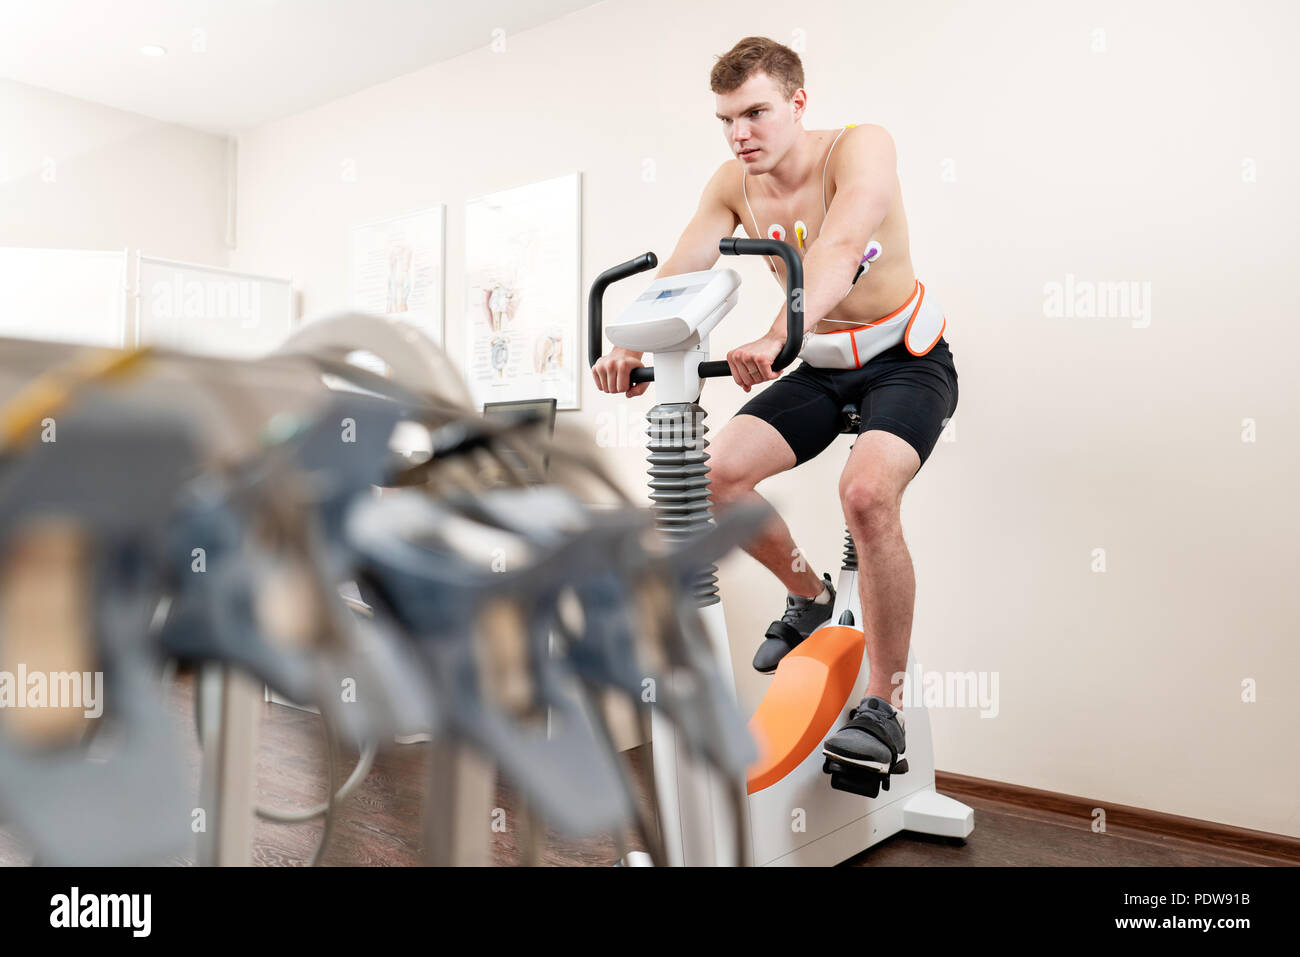 A male patient, pedaling on a bicycle ergometer stress test system for the function of his heart checked. Athlete does a cardiac stress test in a medical study, monitored by the doctor. - Stock Image